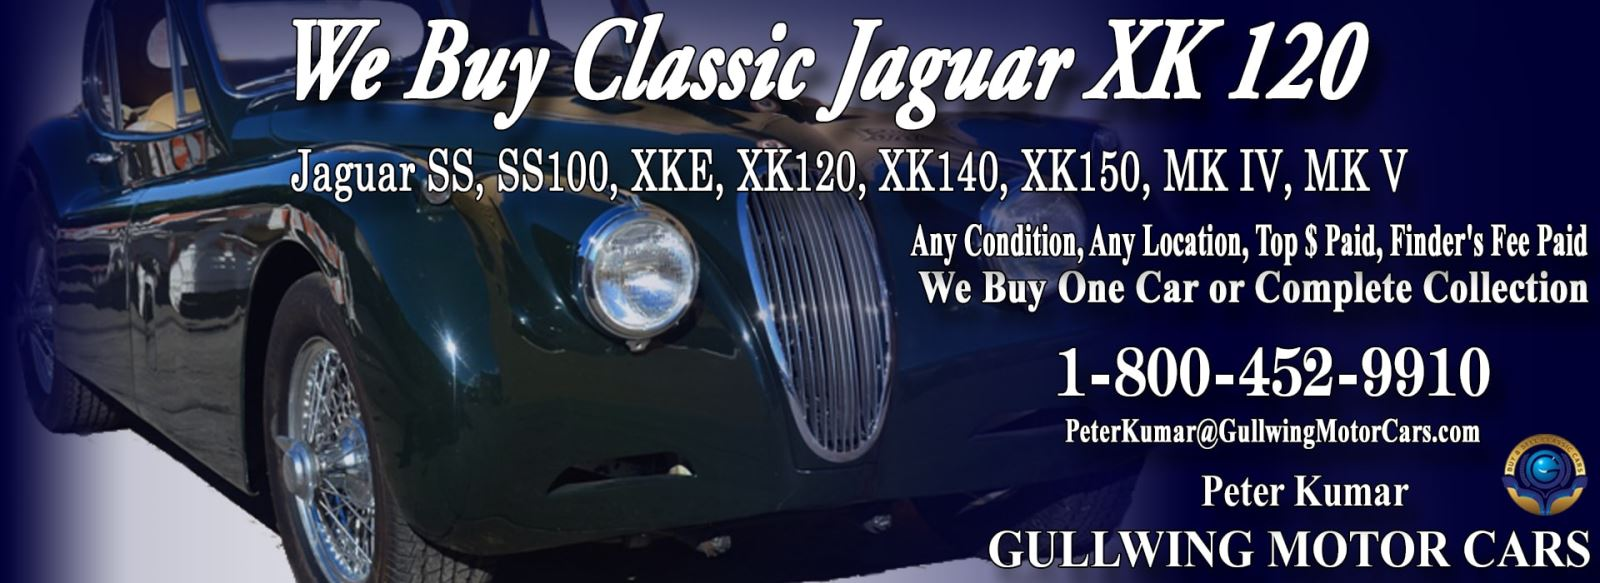 Classic Jaguar for sale, we buy vintage Jaguar XK120. Call Peter Kumar. Gullwing Motor